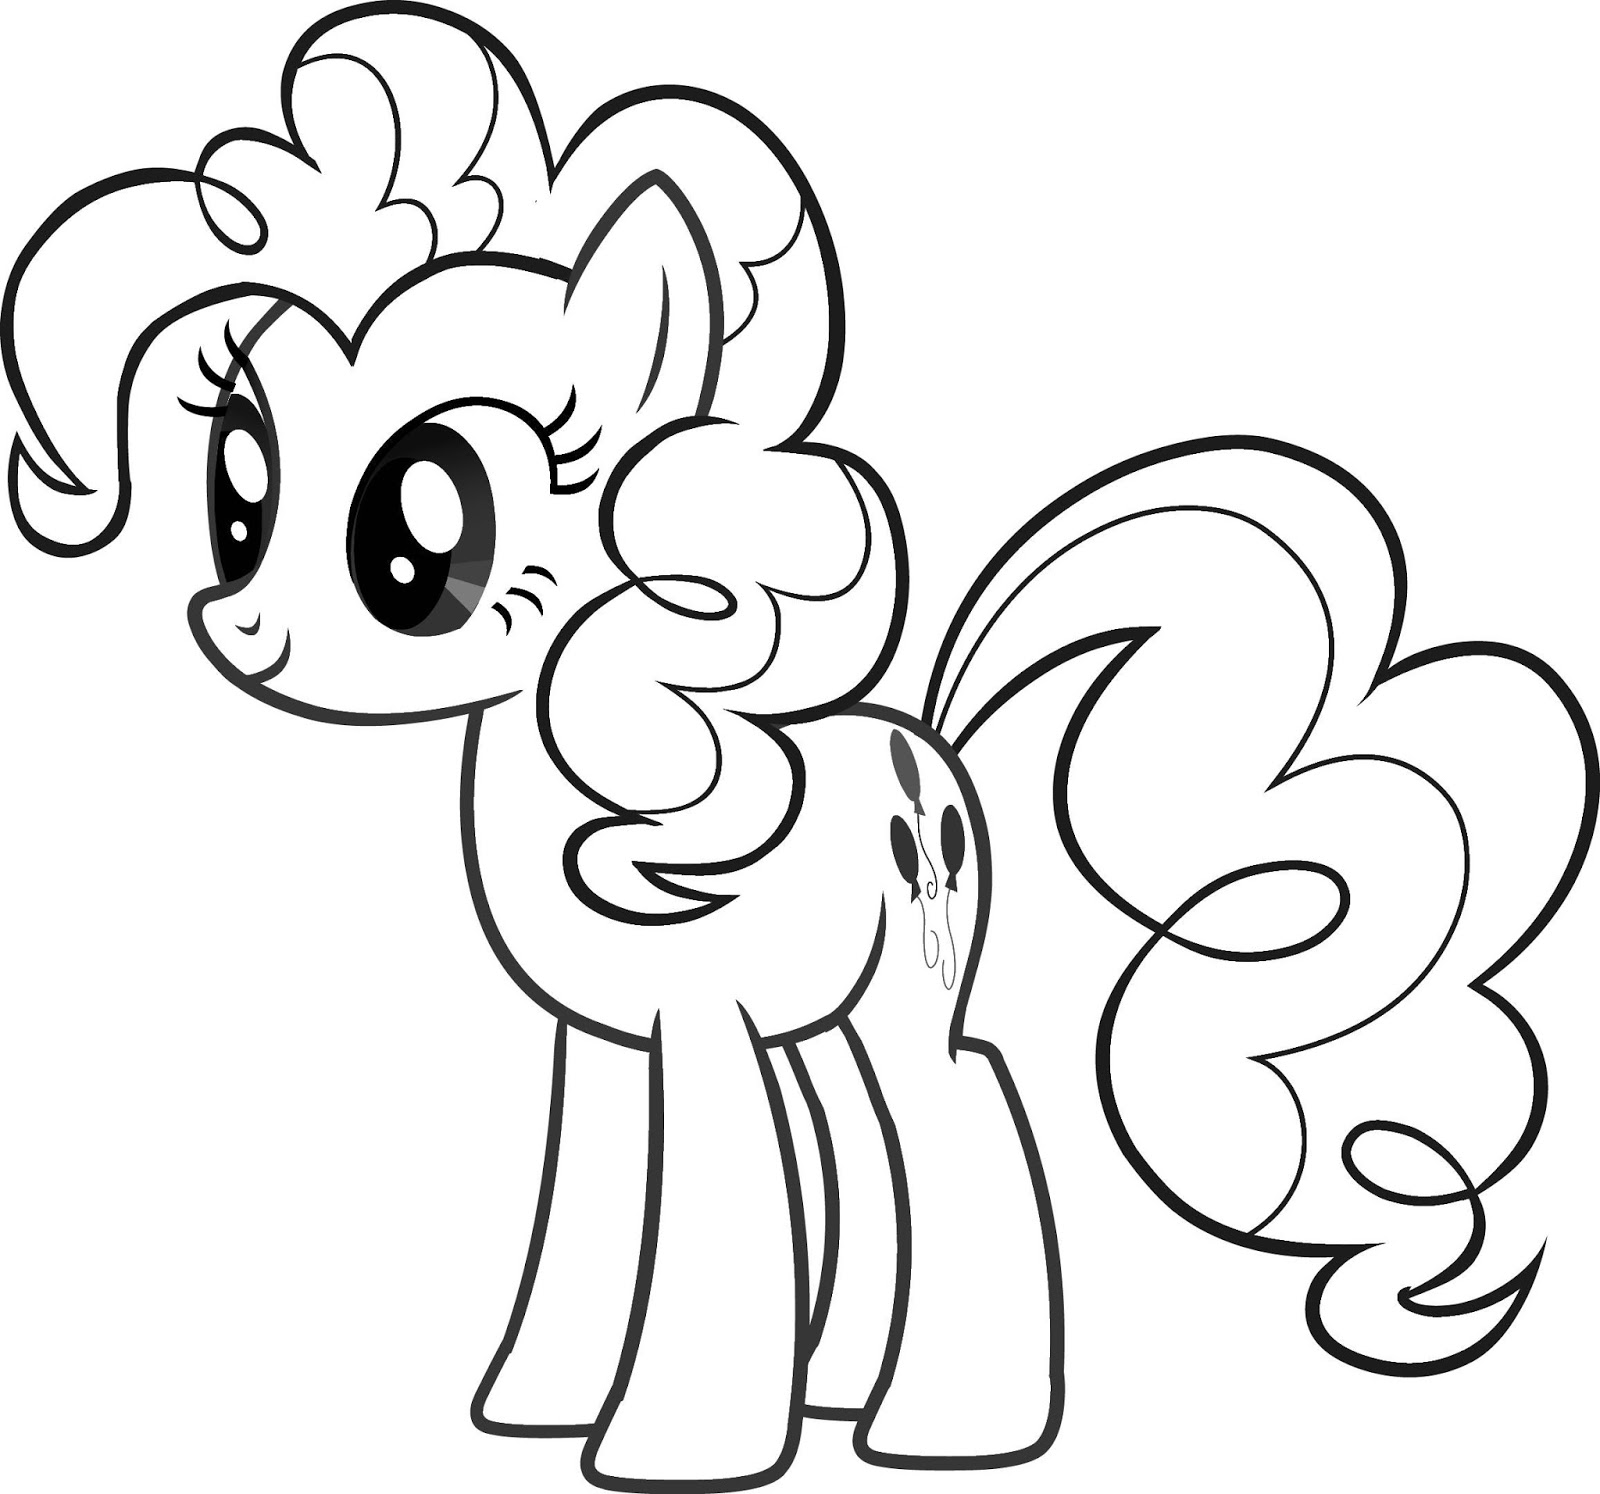 Fun Amp Learn Free Worksheets For Kid My Little Pony Free Coloring Pages